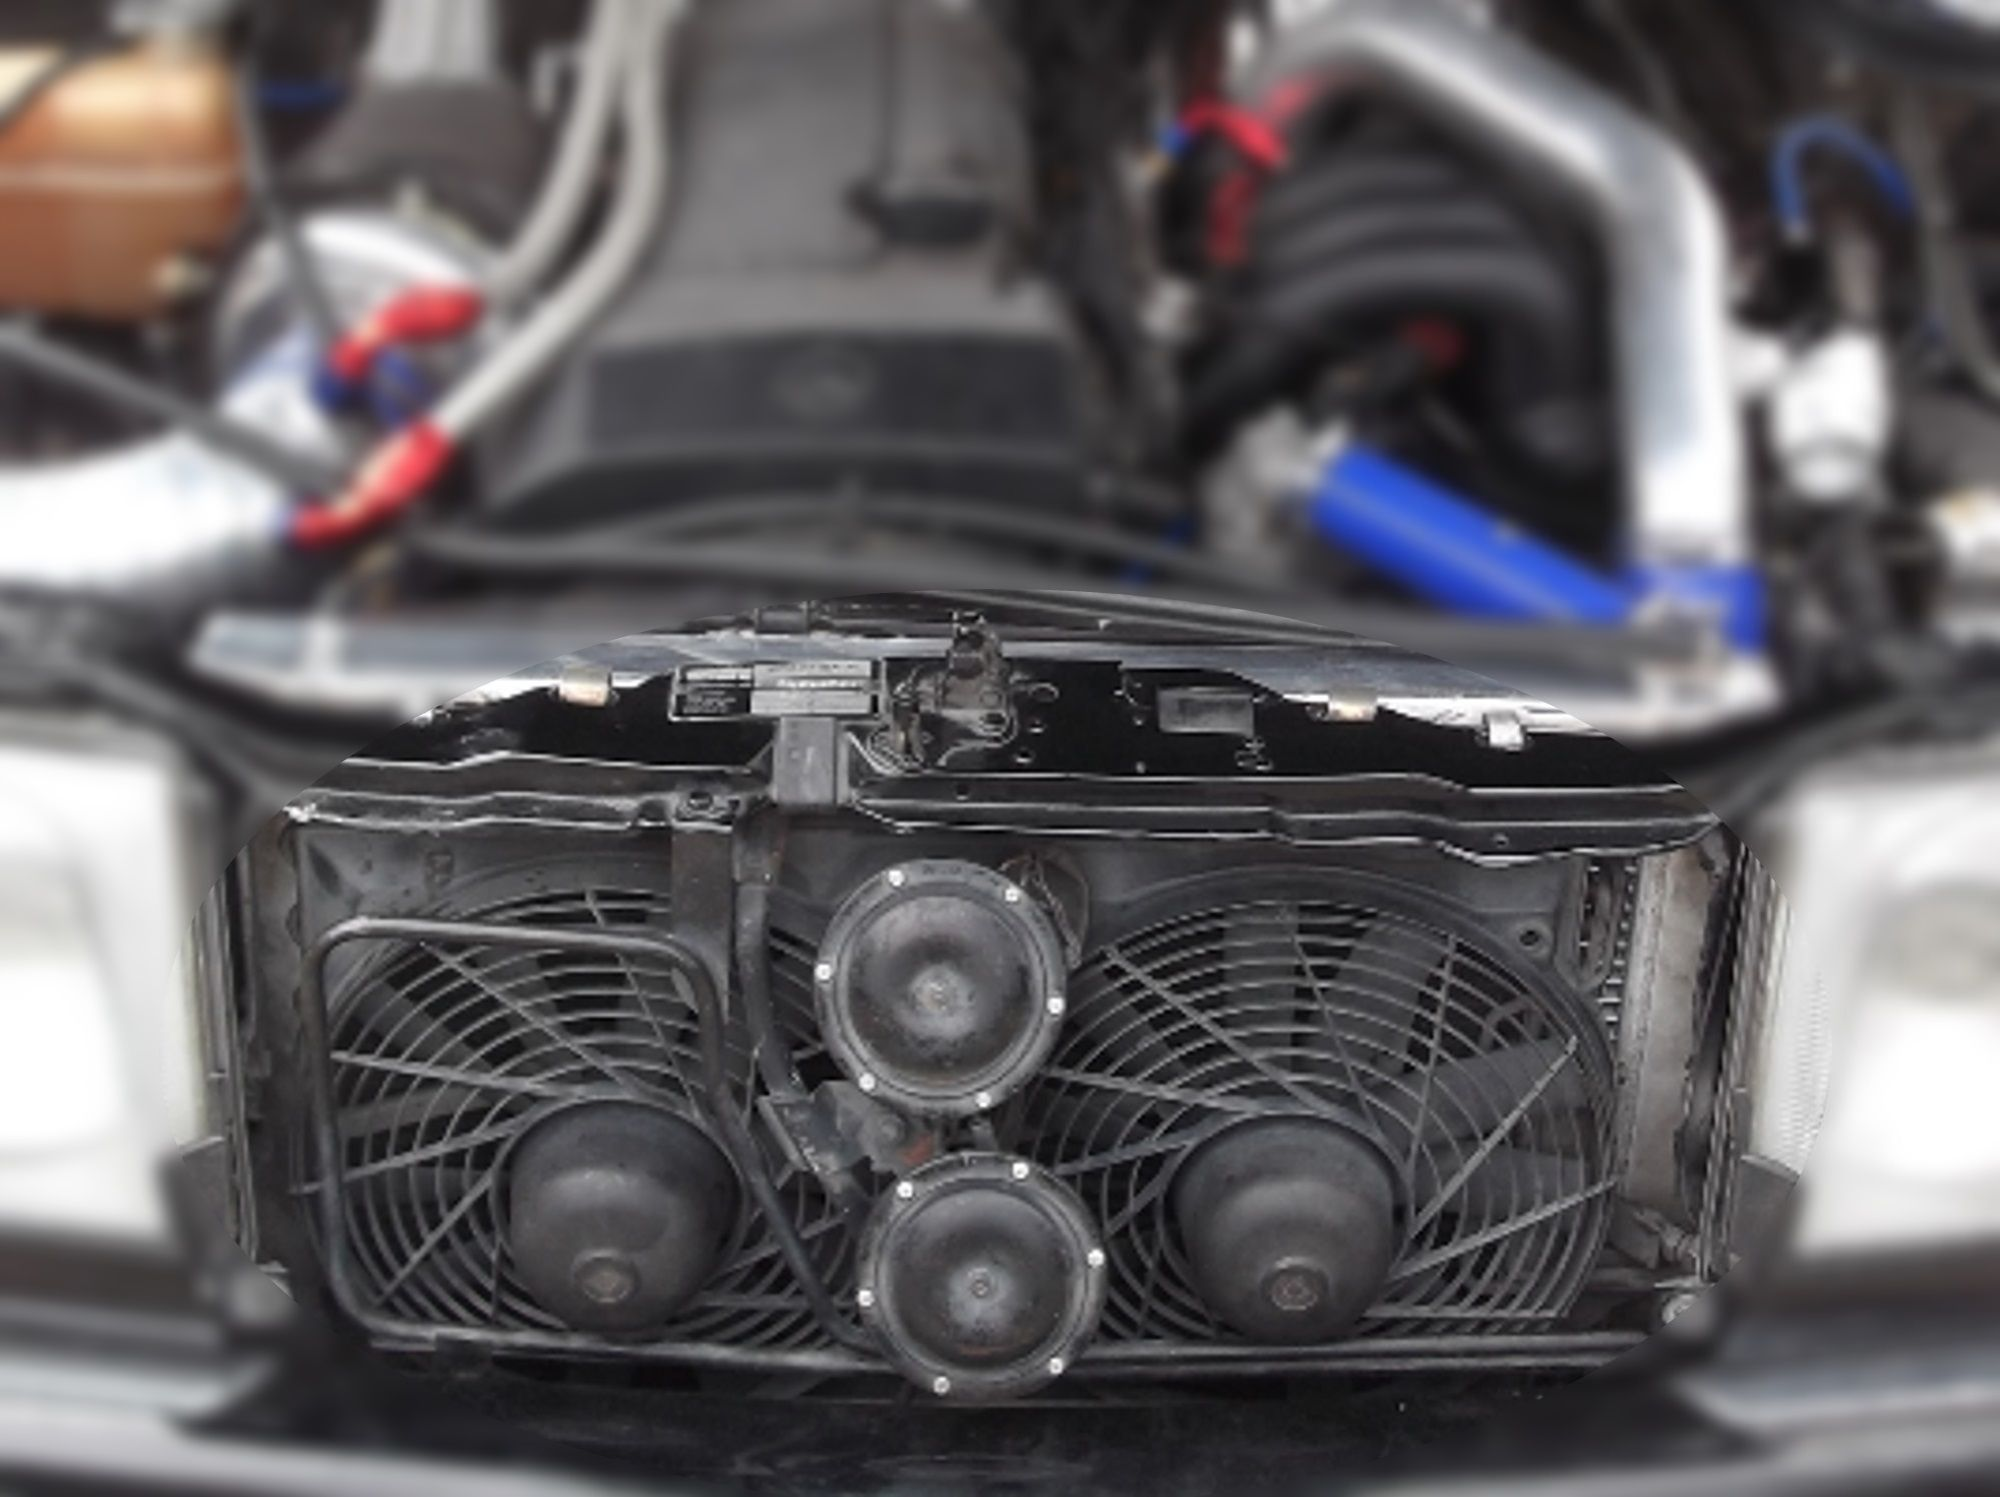 hight resolution of 2013 toyotum camry engine cooling system diagram